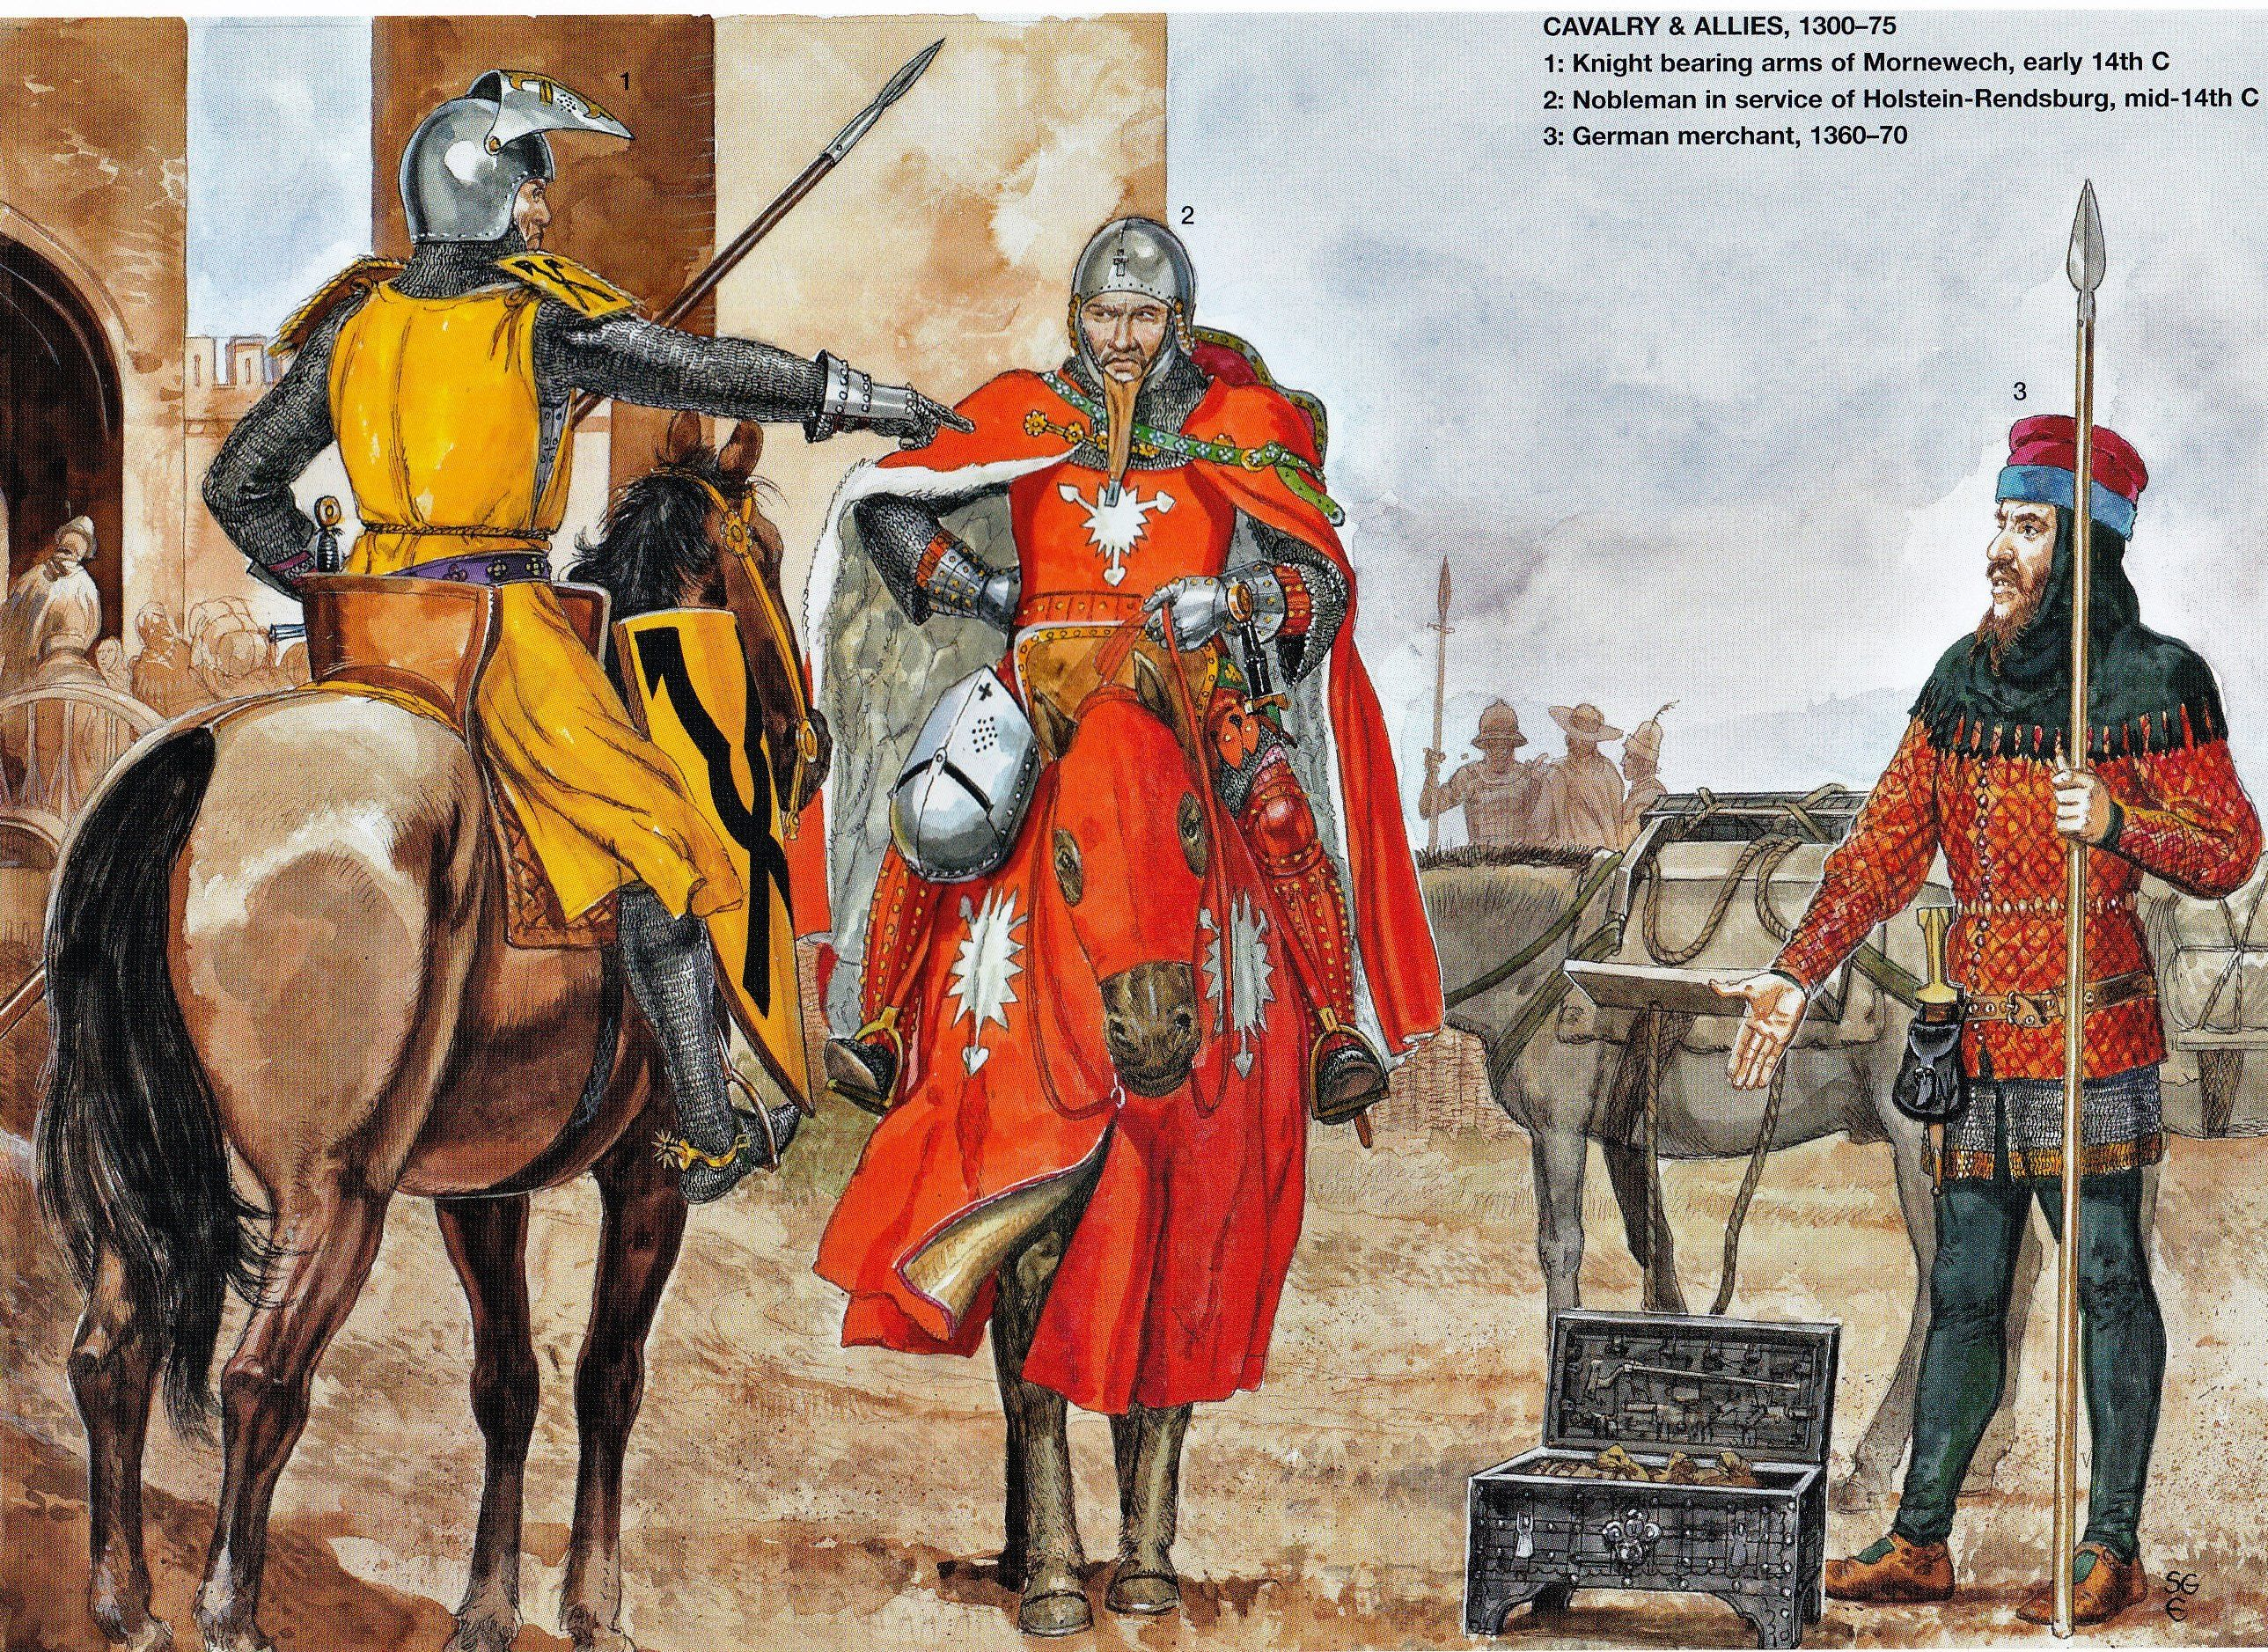 The Portuguese In The Age Of Discovery C 1340 1665 By: Soldiers Of The Hanseatic League, 14th Century